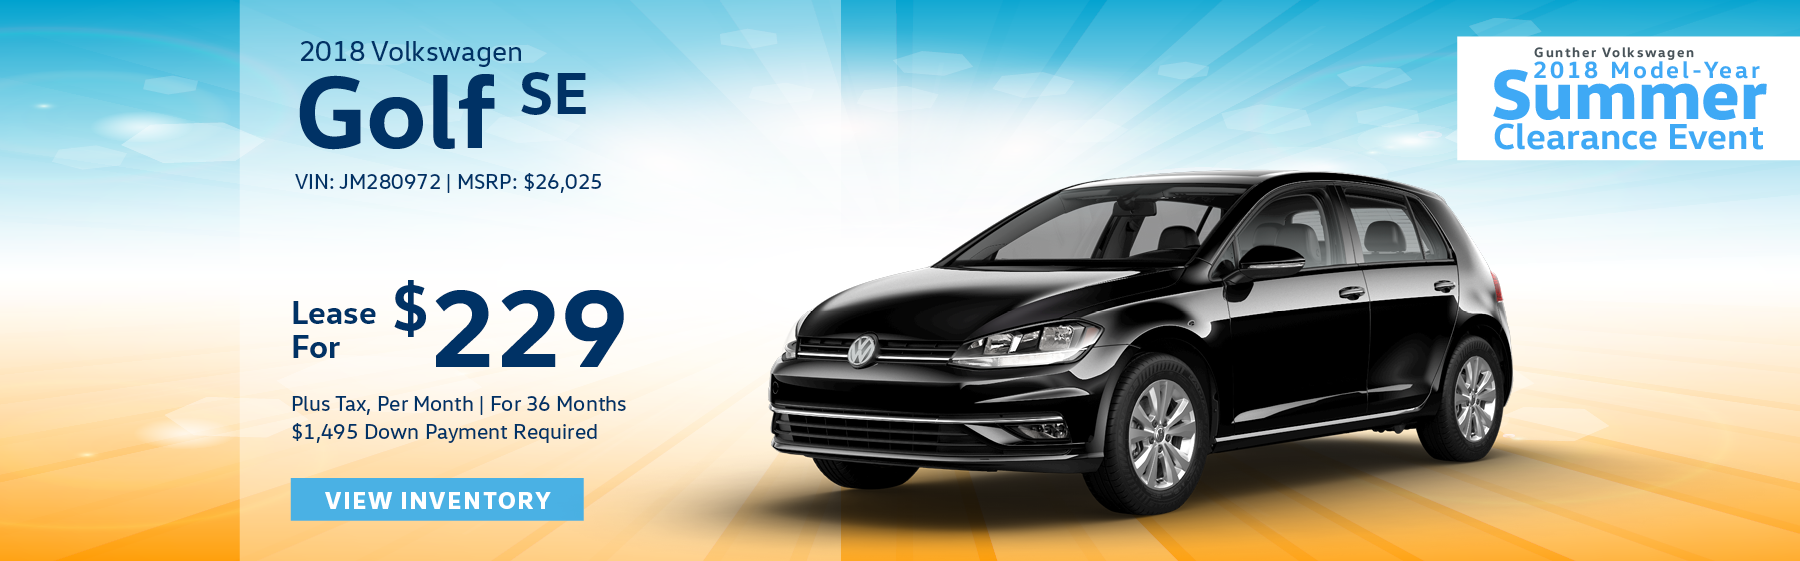 Lease the 2018 Volkswagen Golf SE for $229 per month, plus tax for 36 months. Click here to view inventory